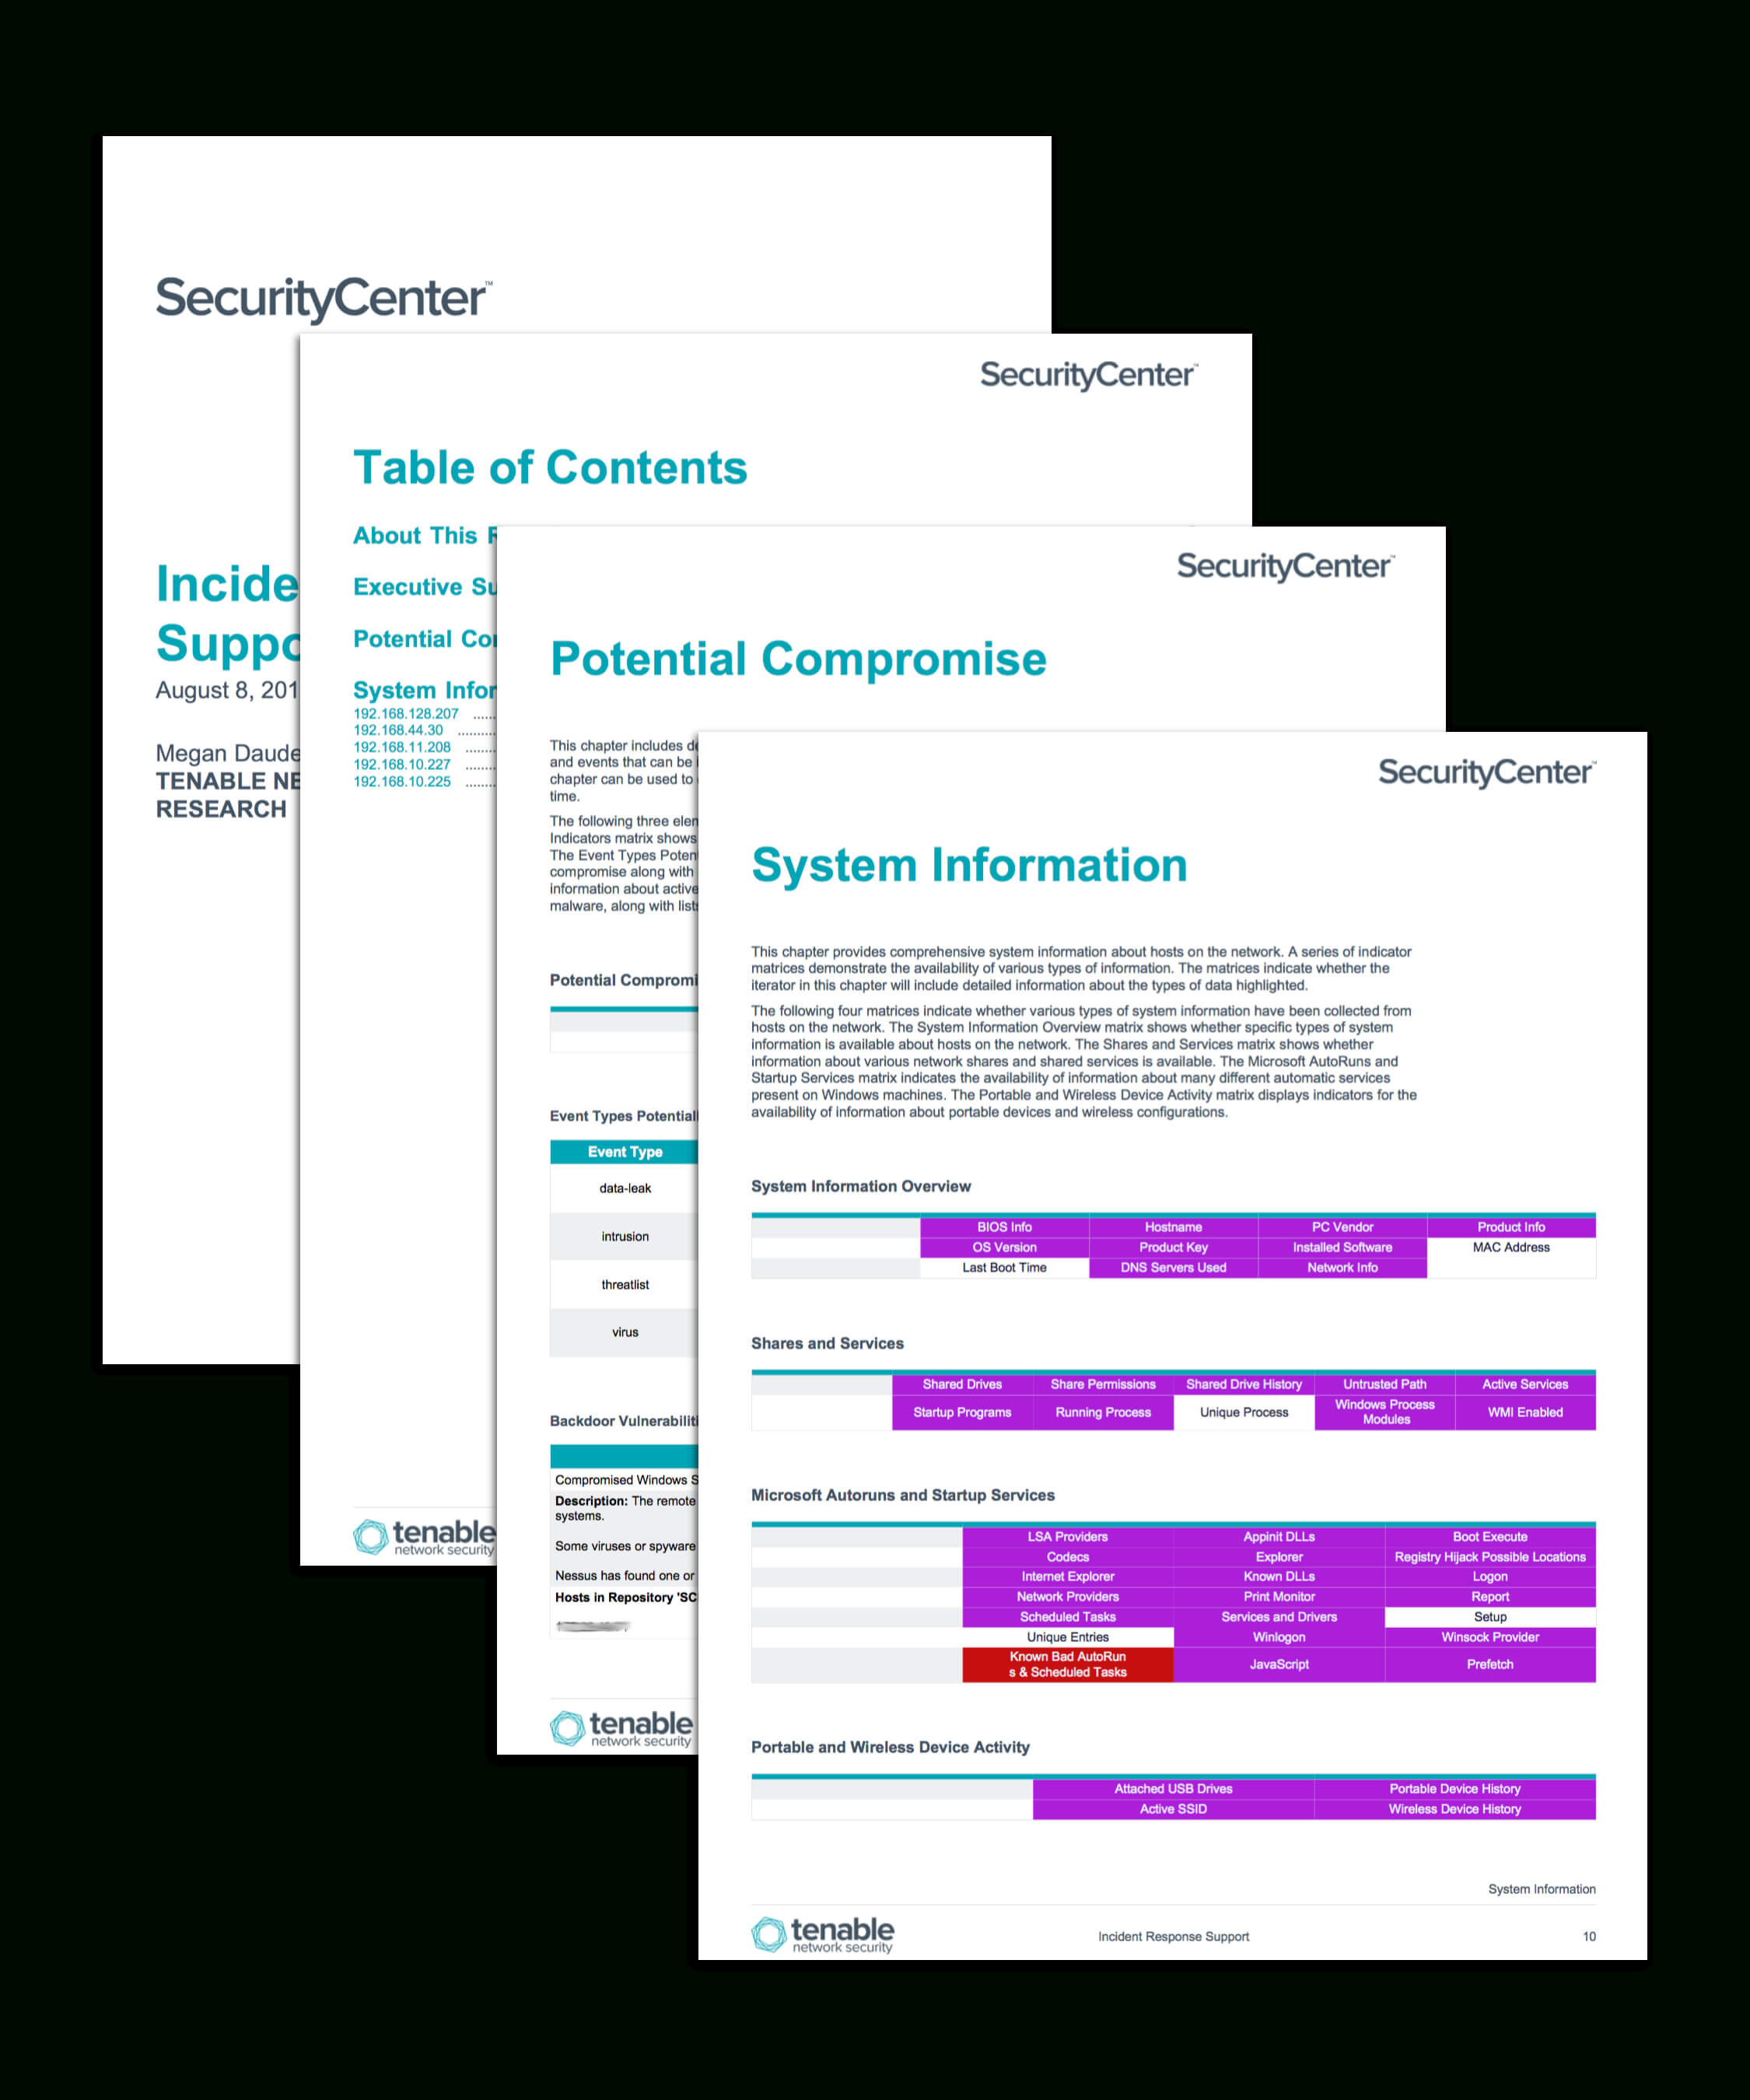 Incident Response Support - Sc Report Template   Tenable® Regarding It Support Report Template